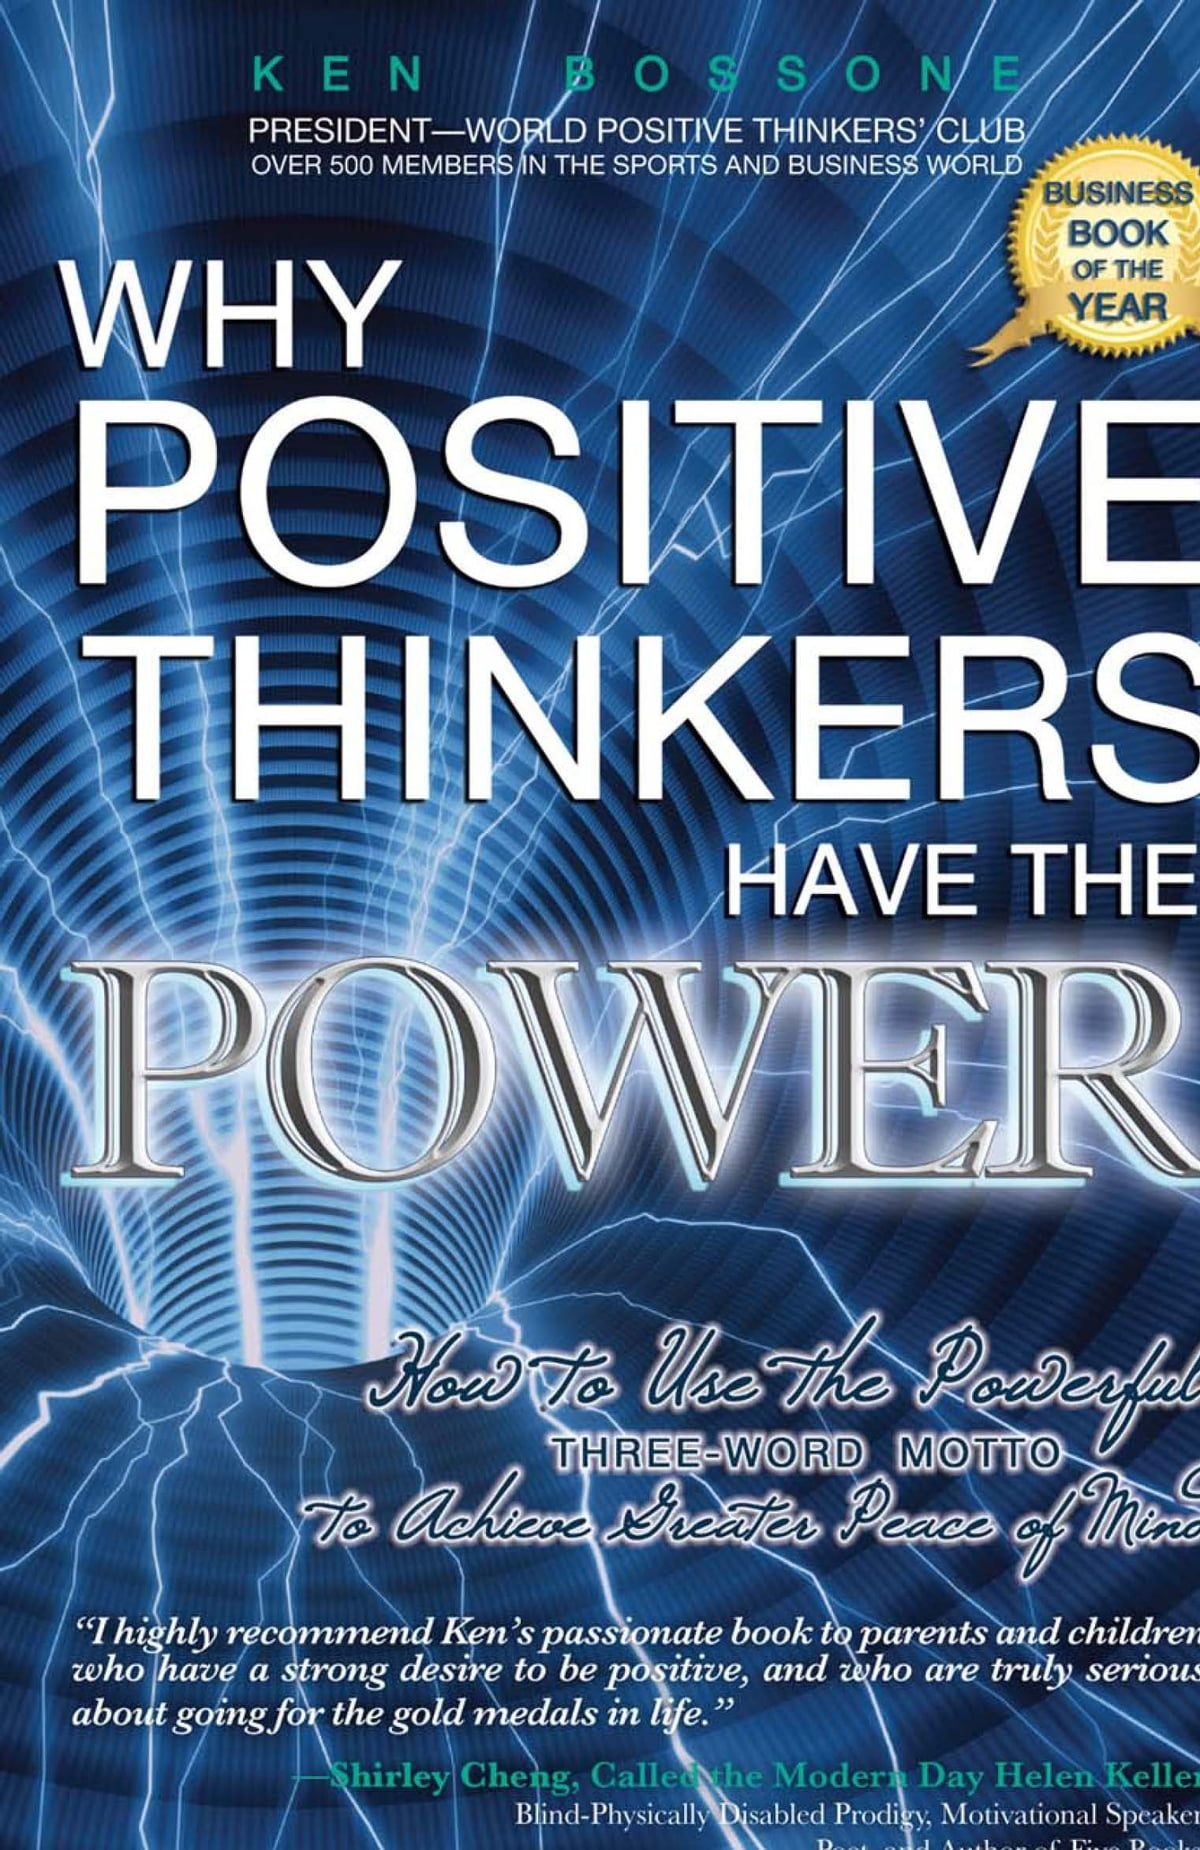 Why Positive Thinkers Have The Power eBook by Ken Bossone - 9780883912881 |  Rakuten Kobo